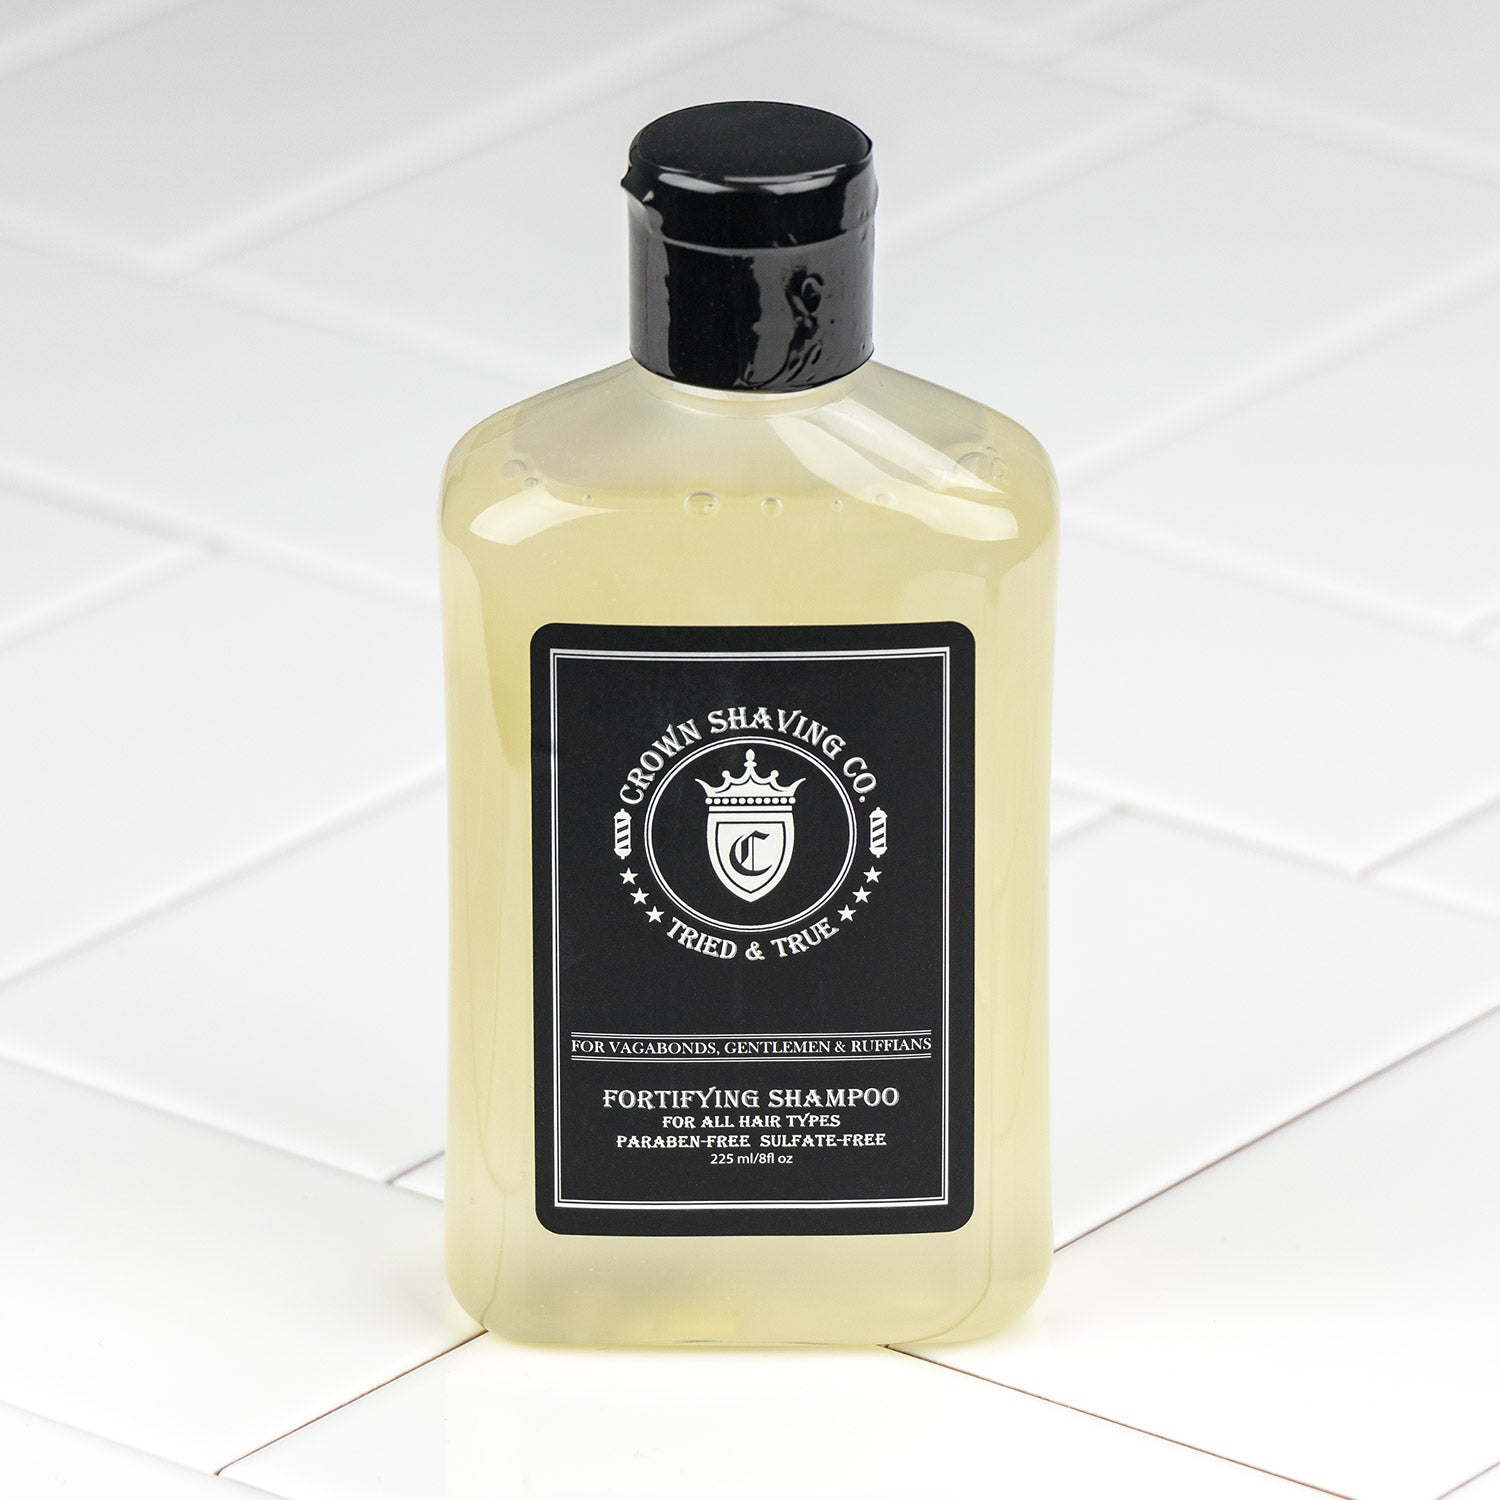 Crown Shaving Co. Fortifying Shampoo 8oz